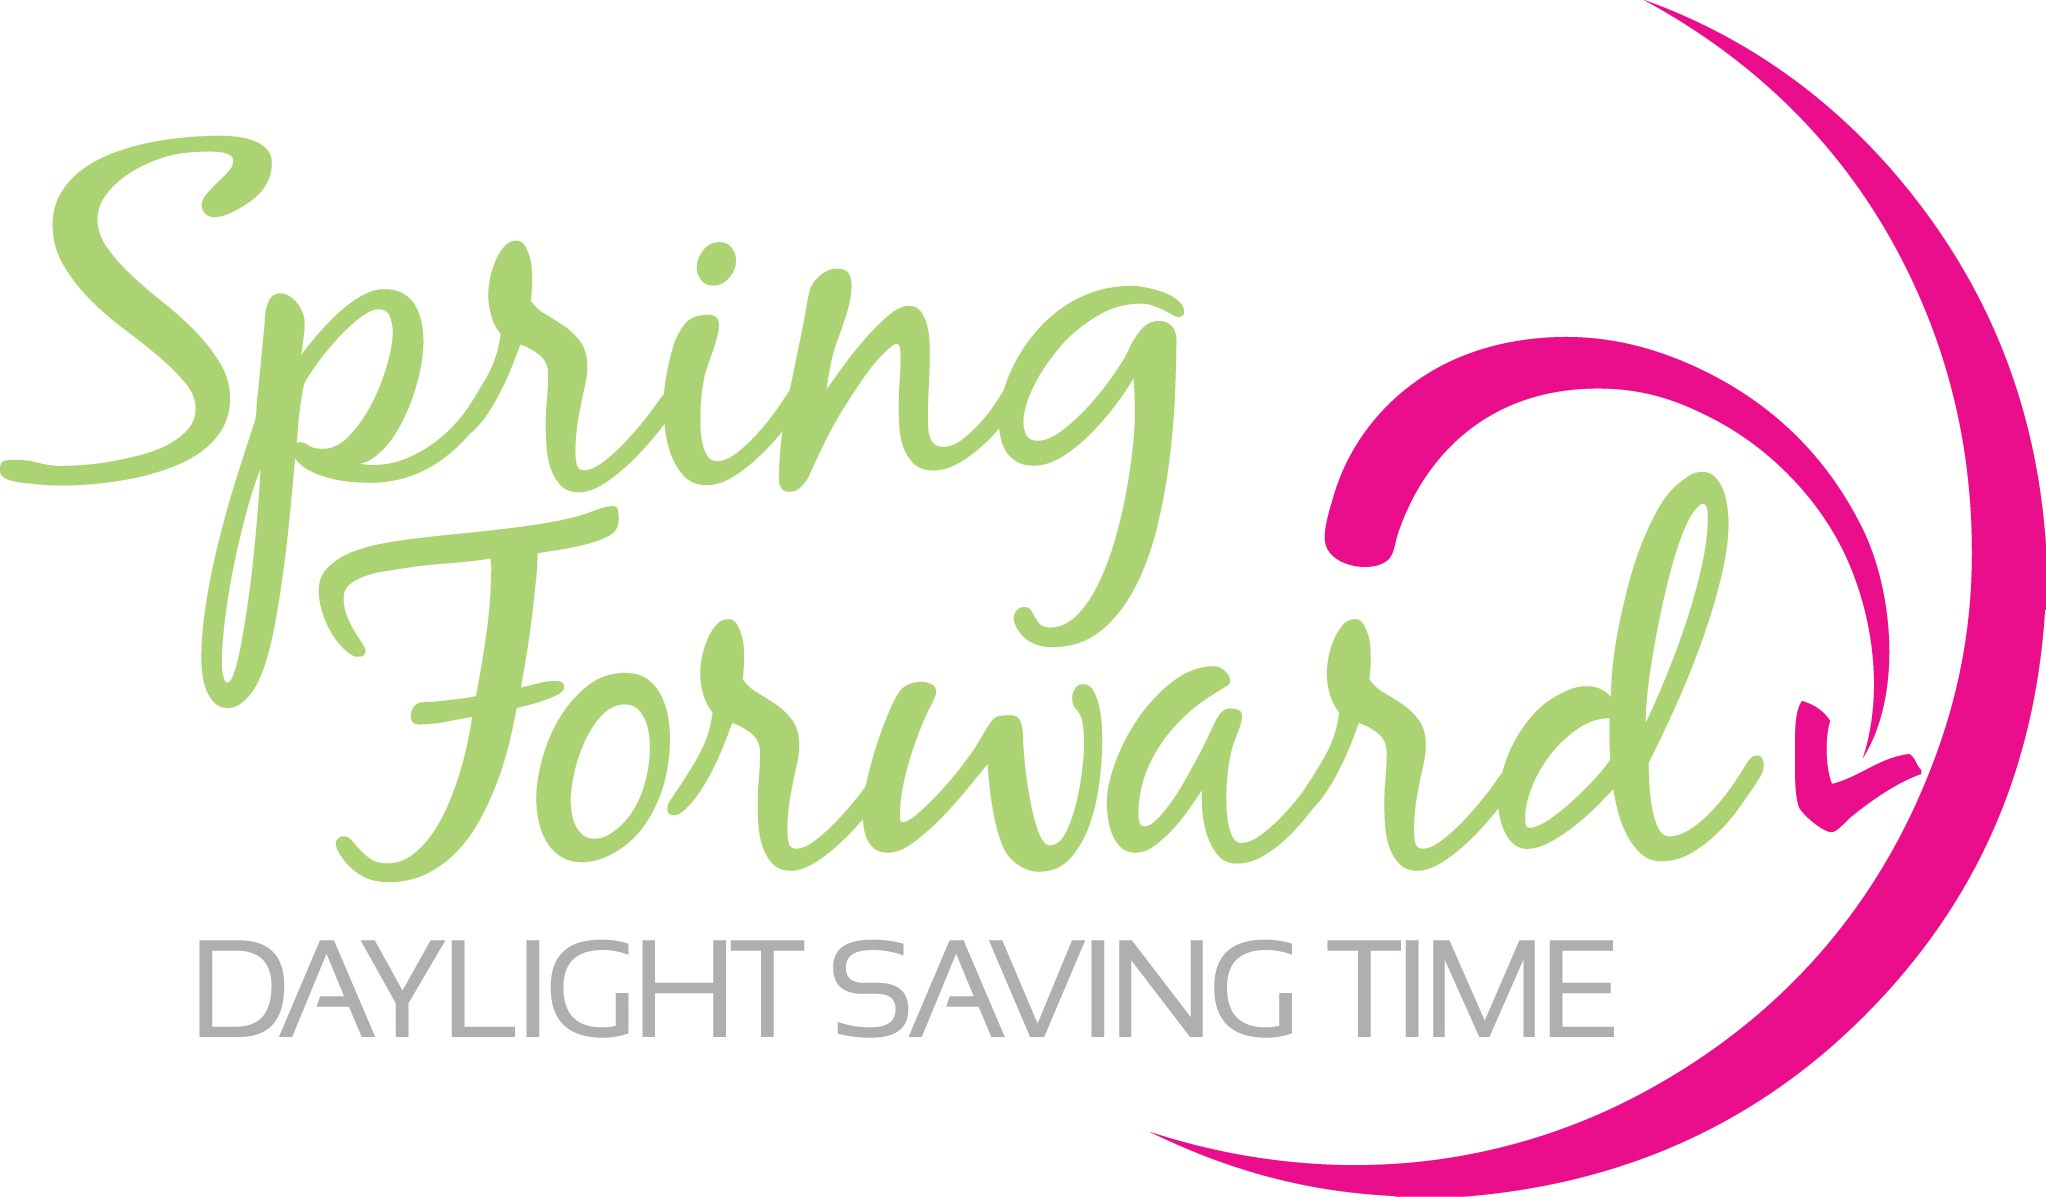 Daylight savings clipart free 6 » Clipart Portal.